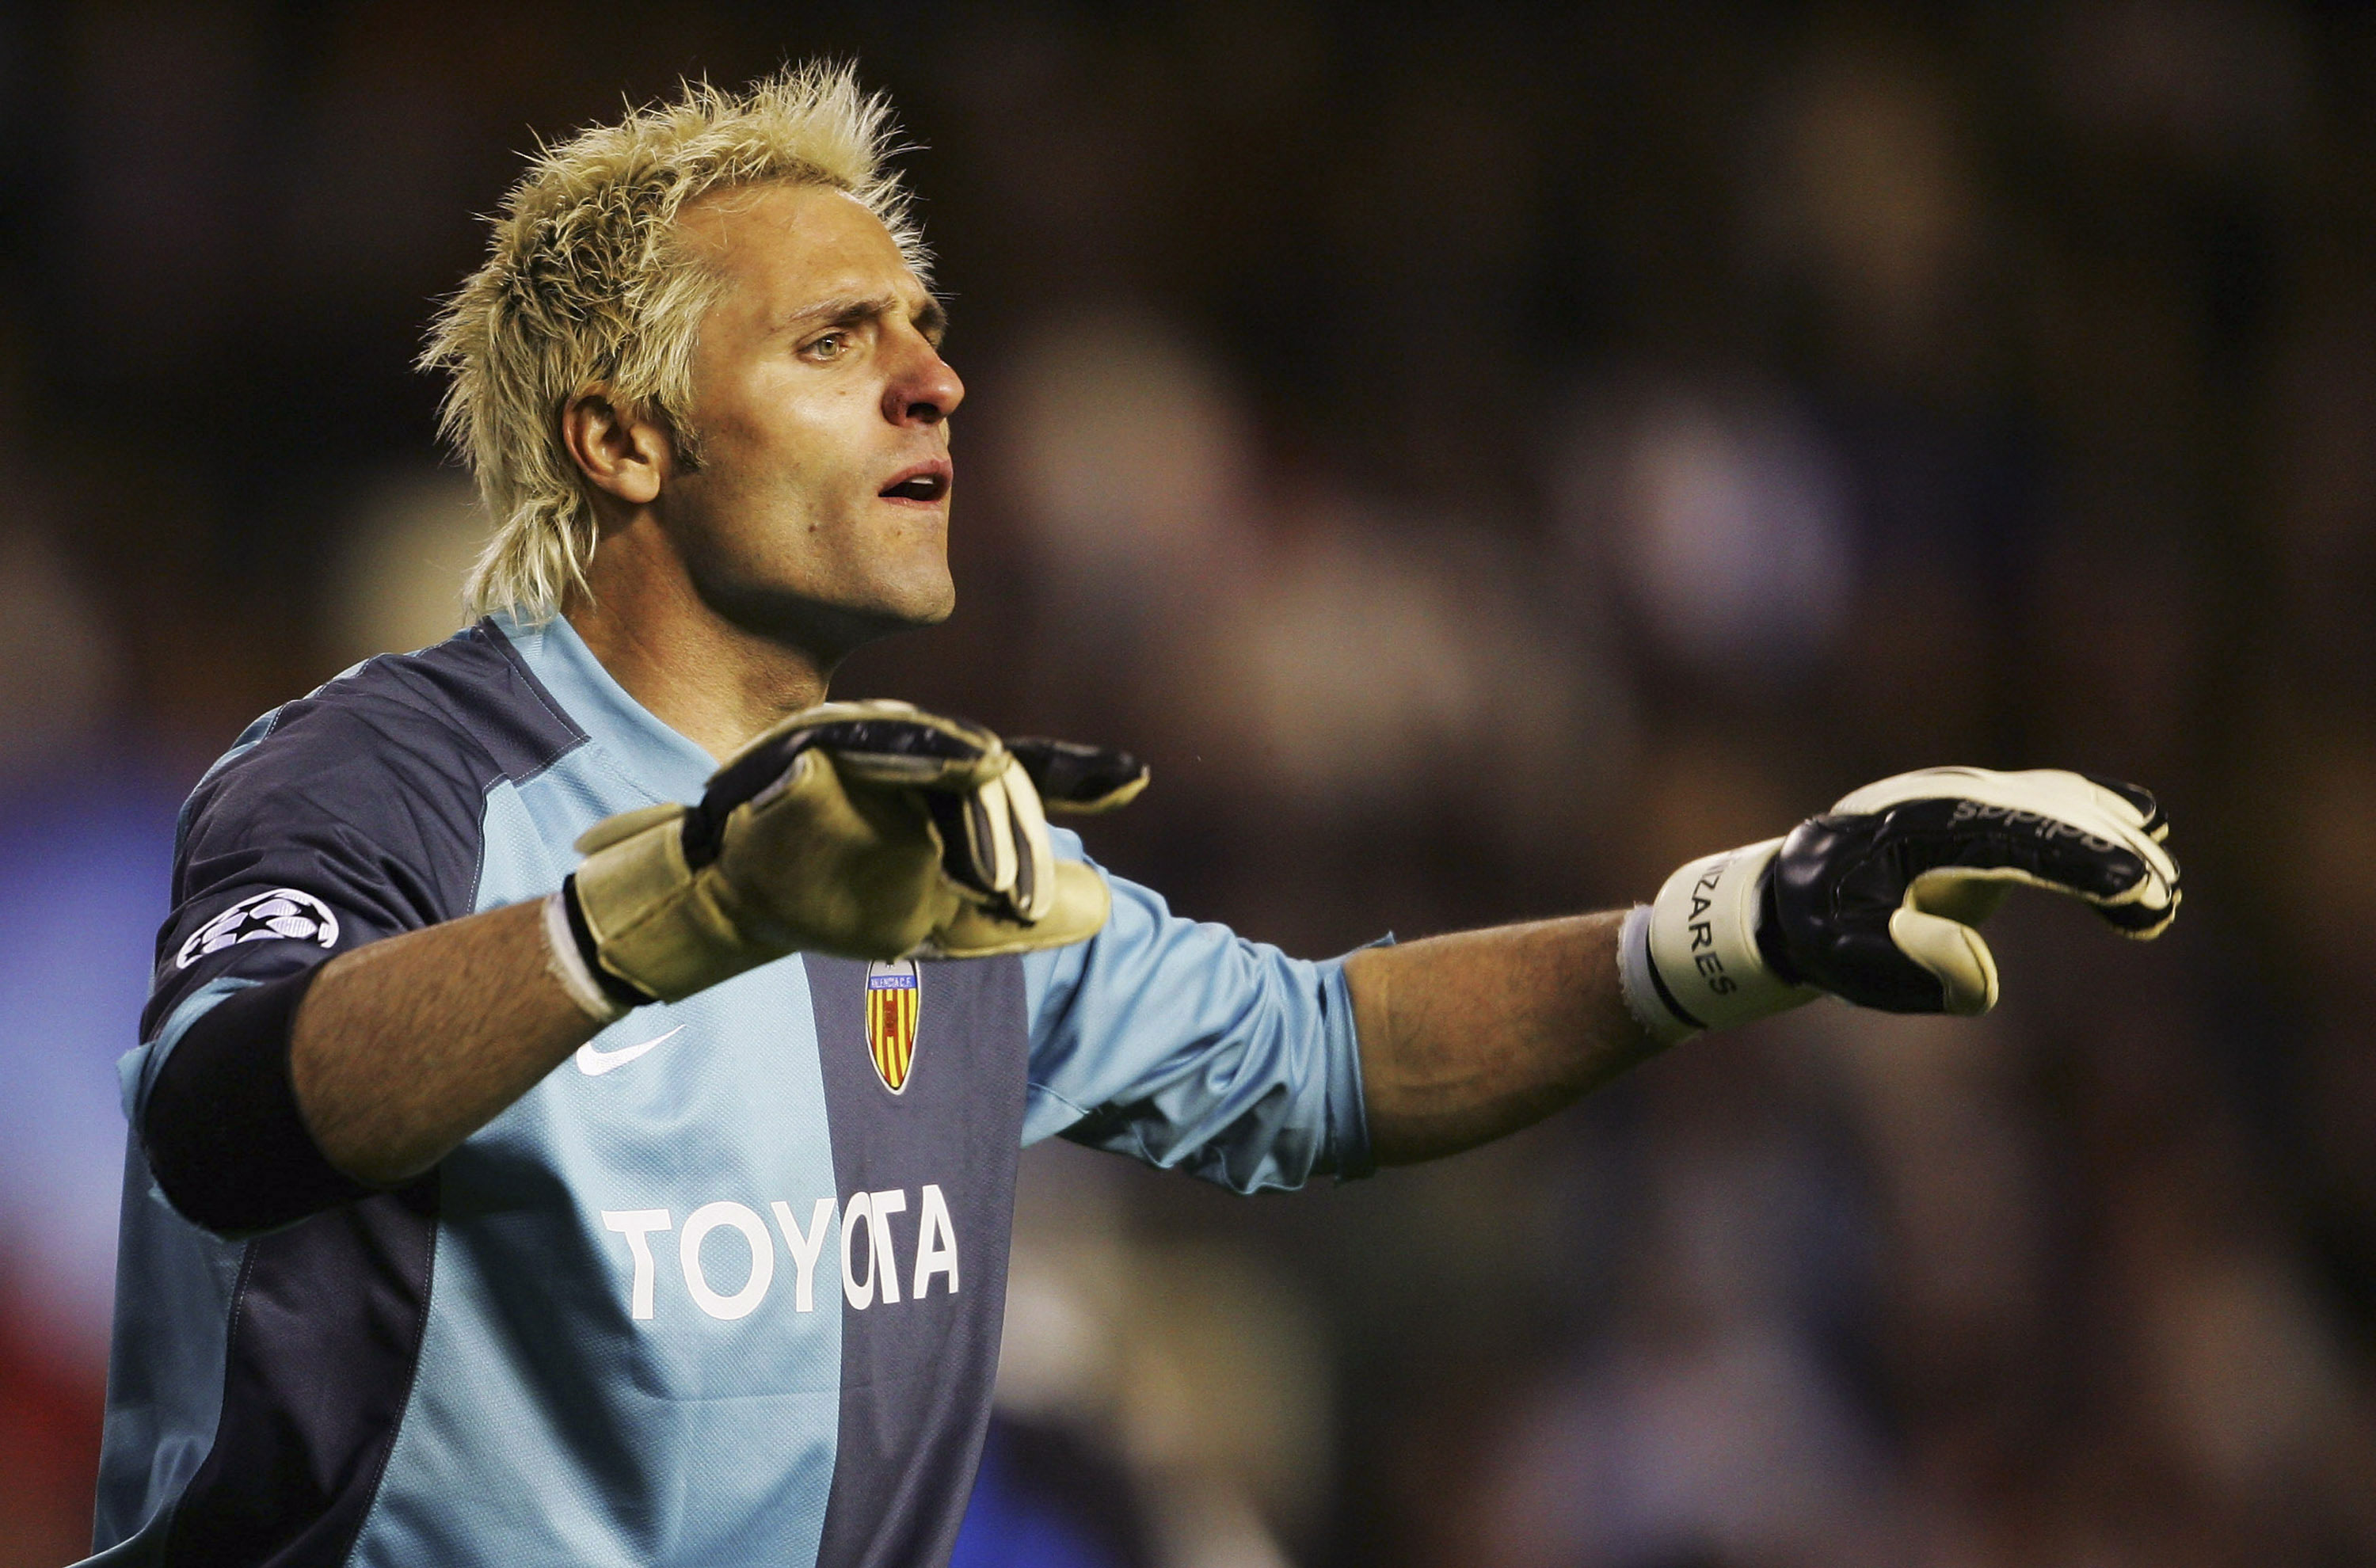 Spanish goalkeeper Santiago Canizares playing for Valencia in the Uefa Champions League